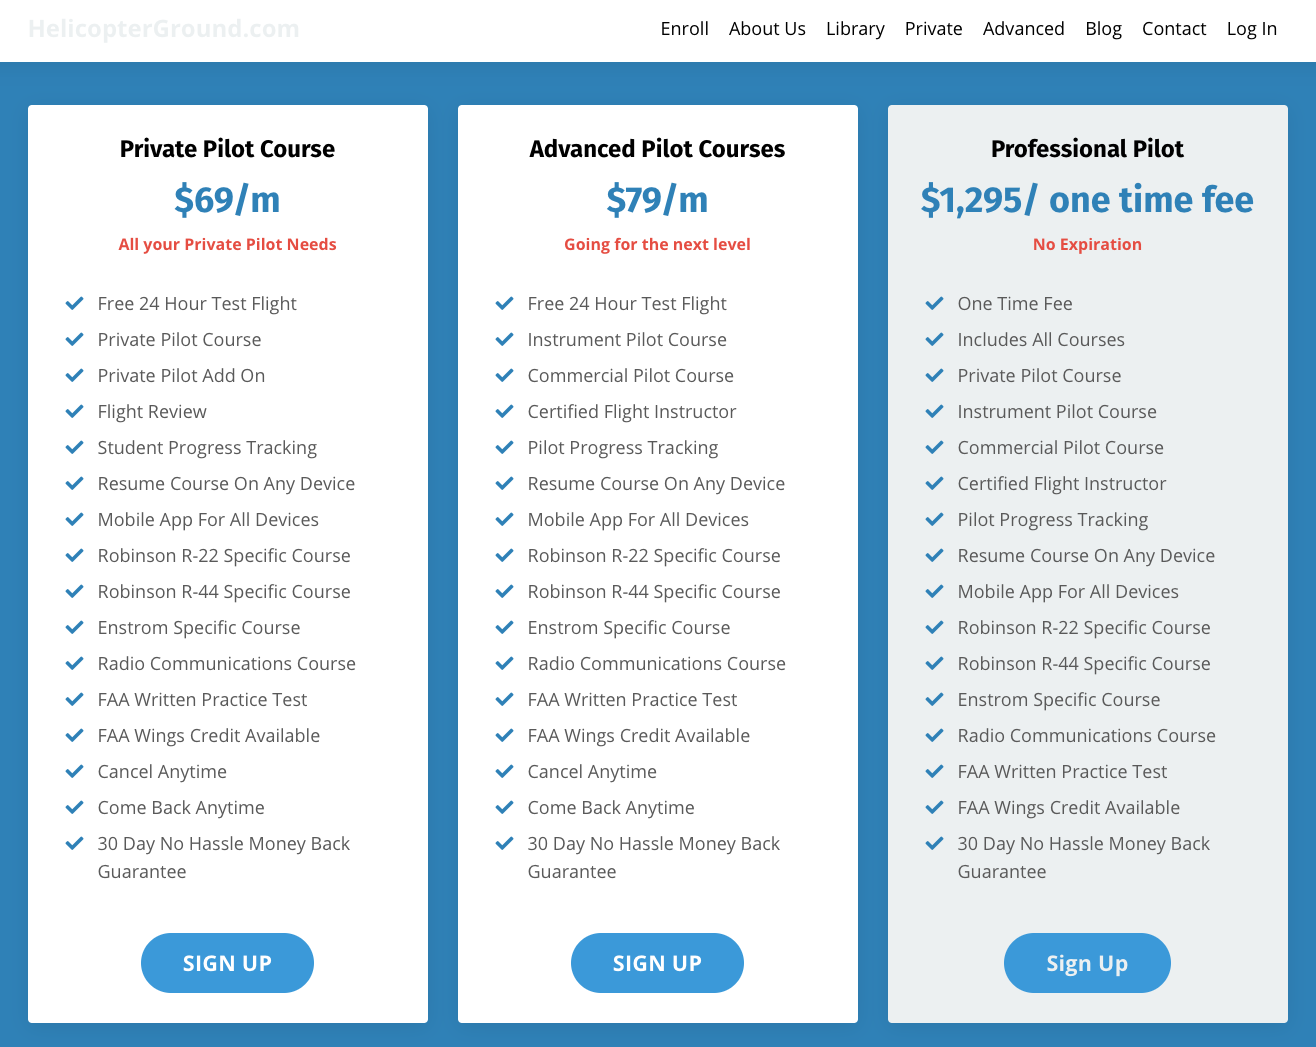 Screenshot of the Helicopter Ground School pricing, offering courses at $69 per month, $79 per month, or a one time fee of $1,295